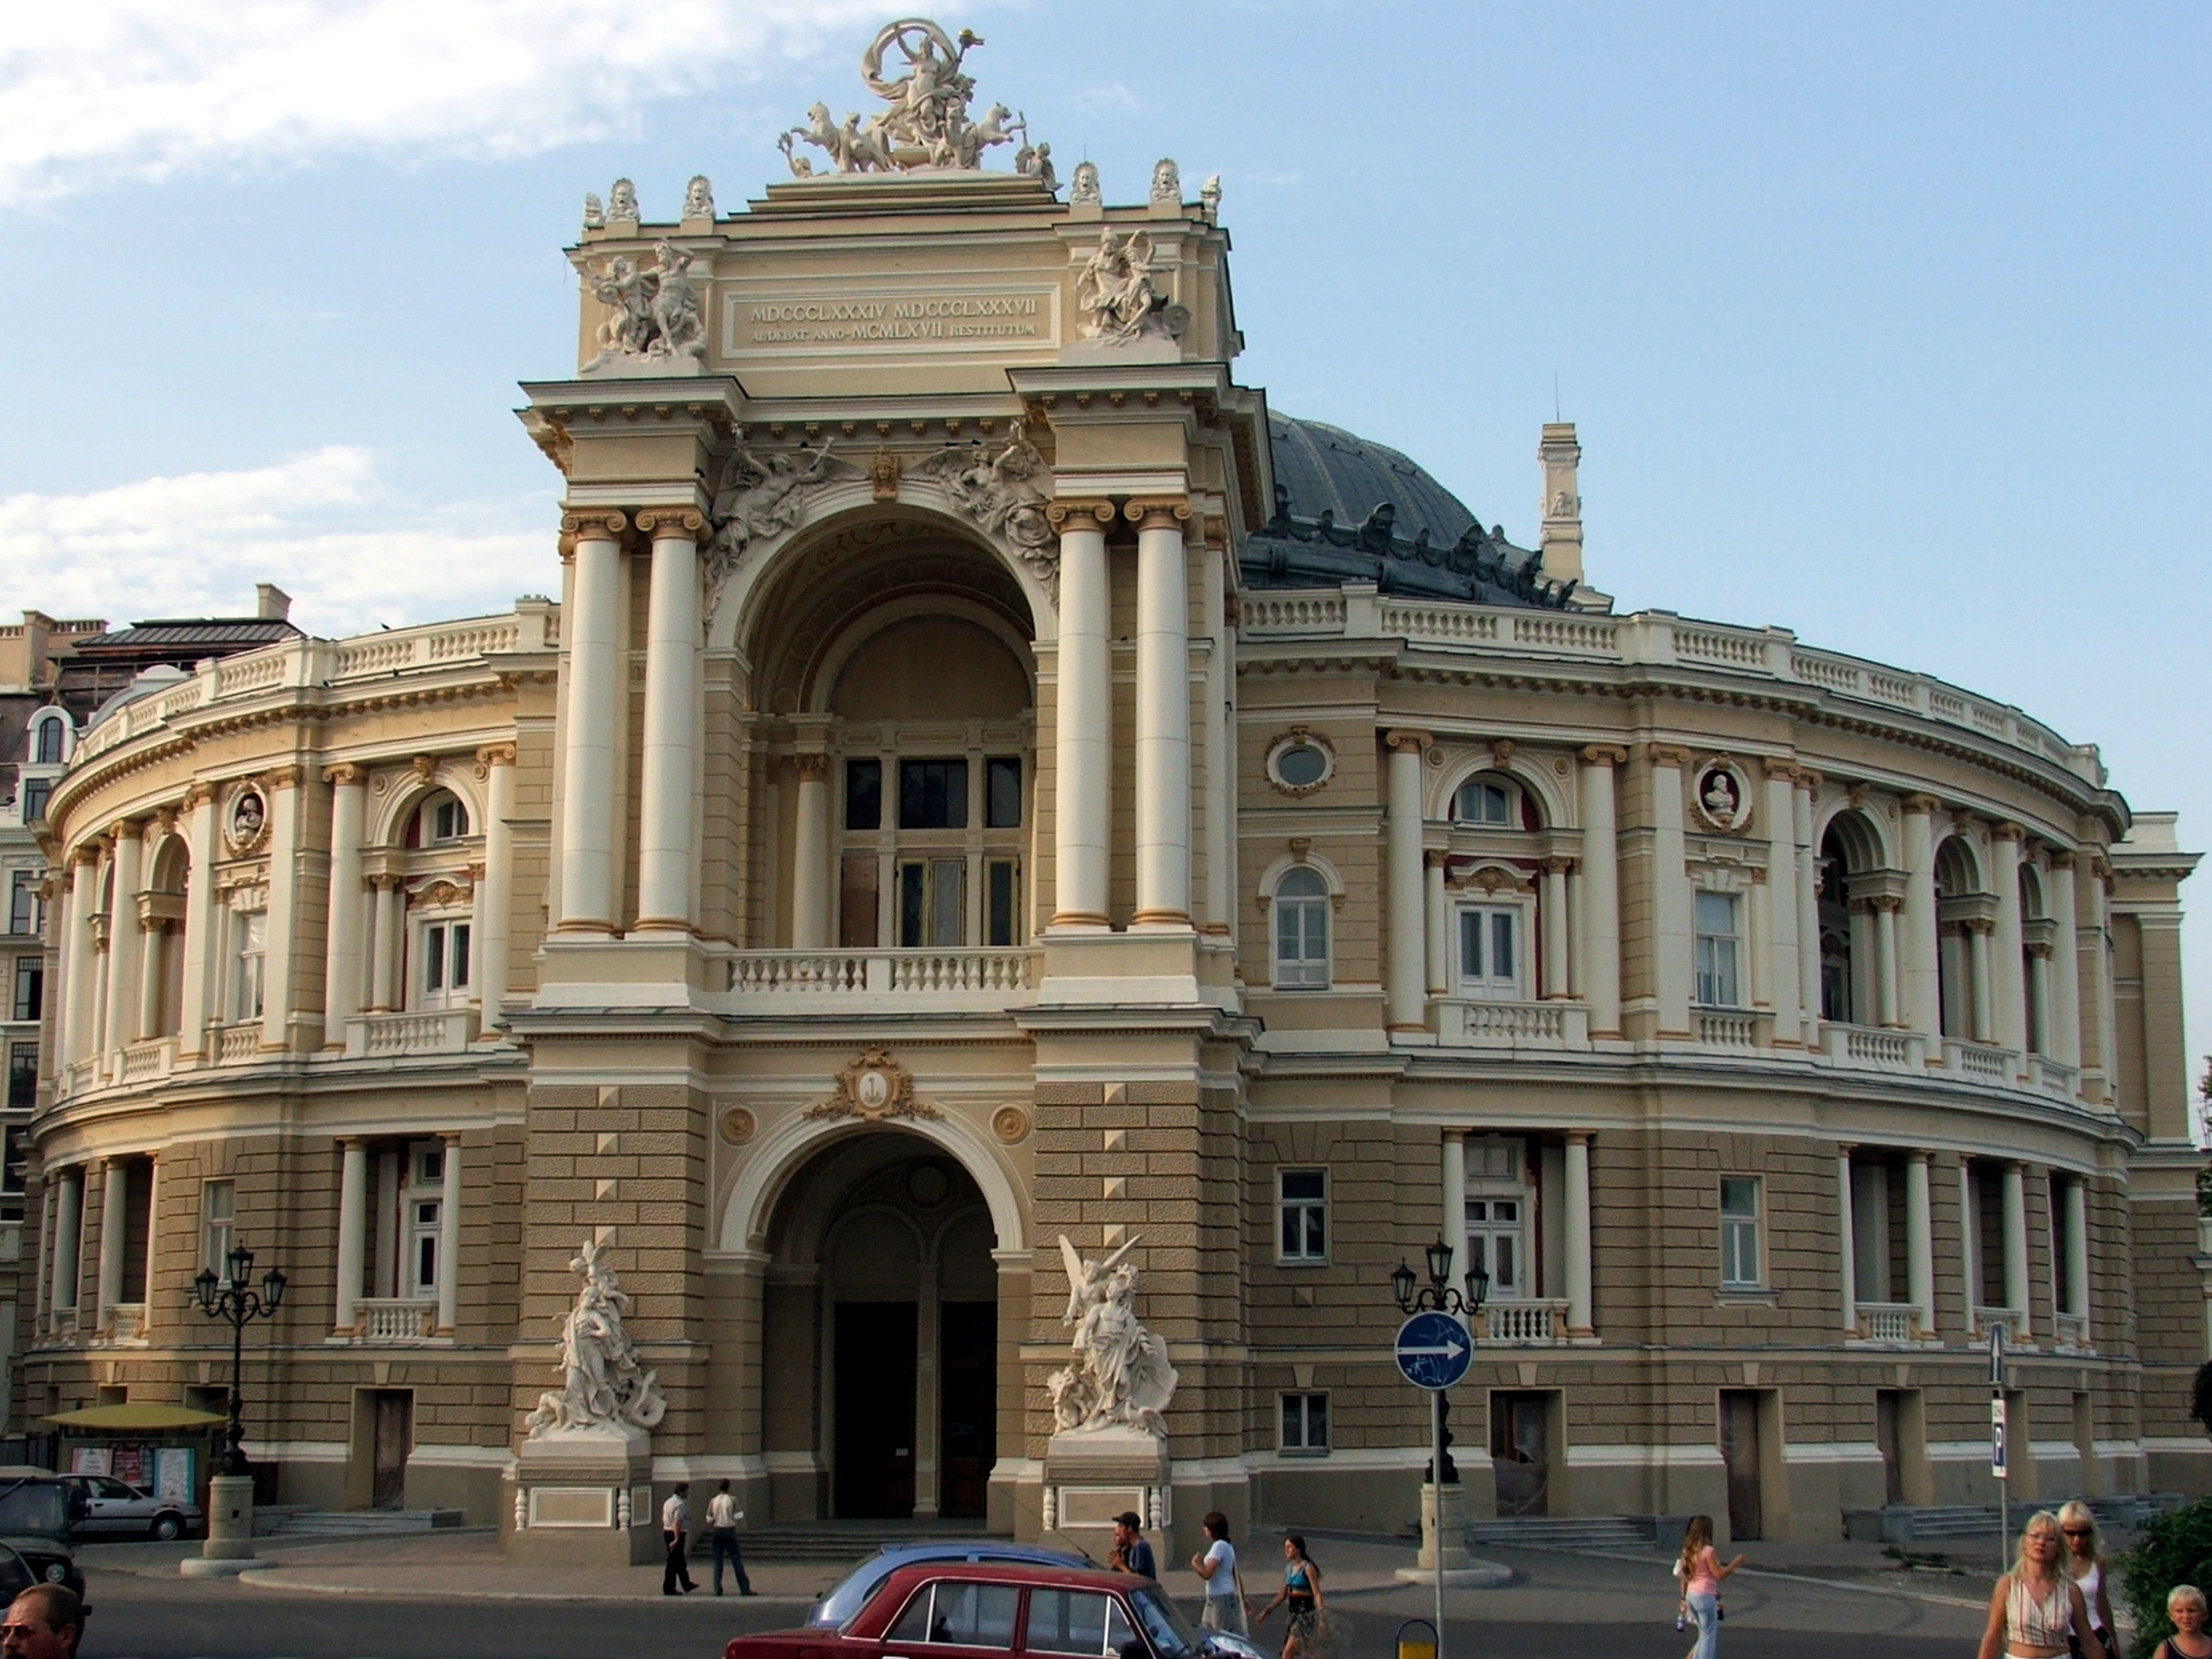 http://upload.wikimedia.org/wikipedia/commons/5/52/Odessa_theatre.jpg